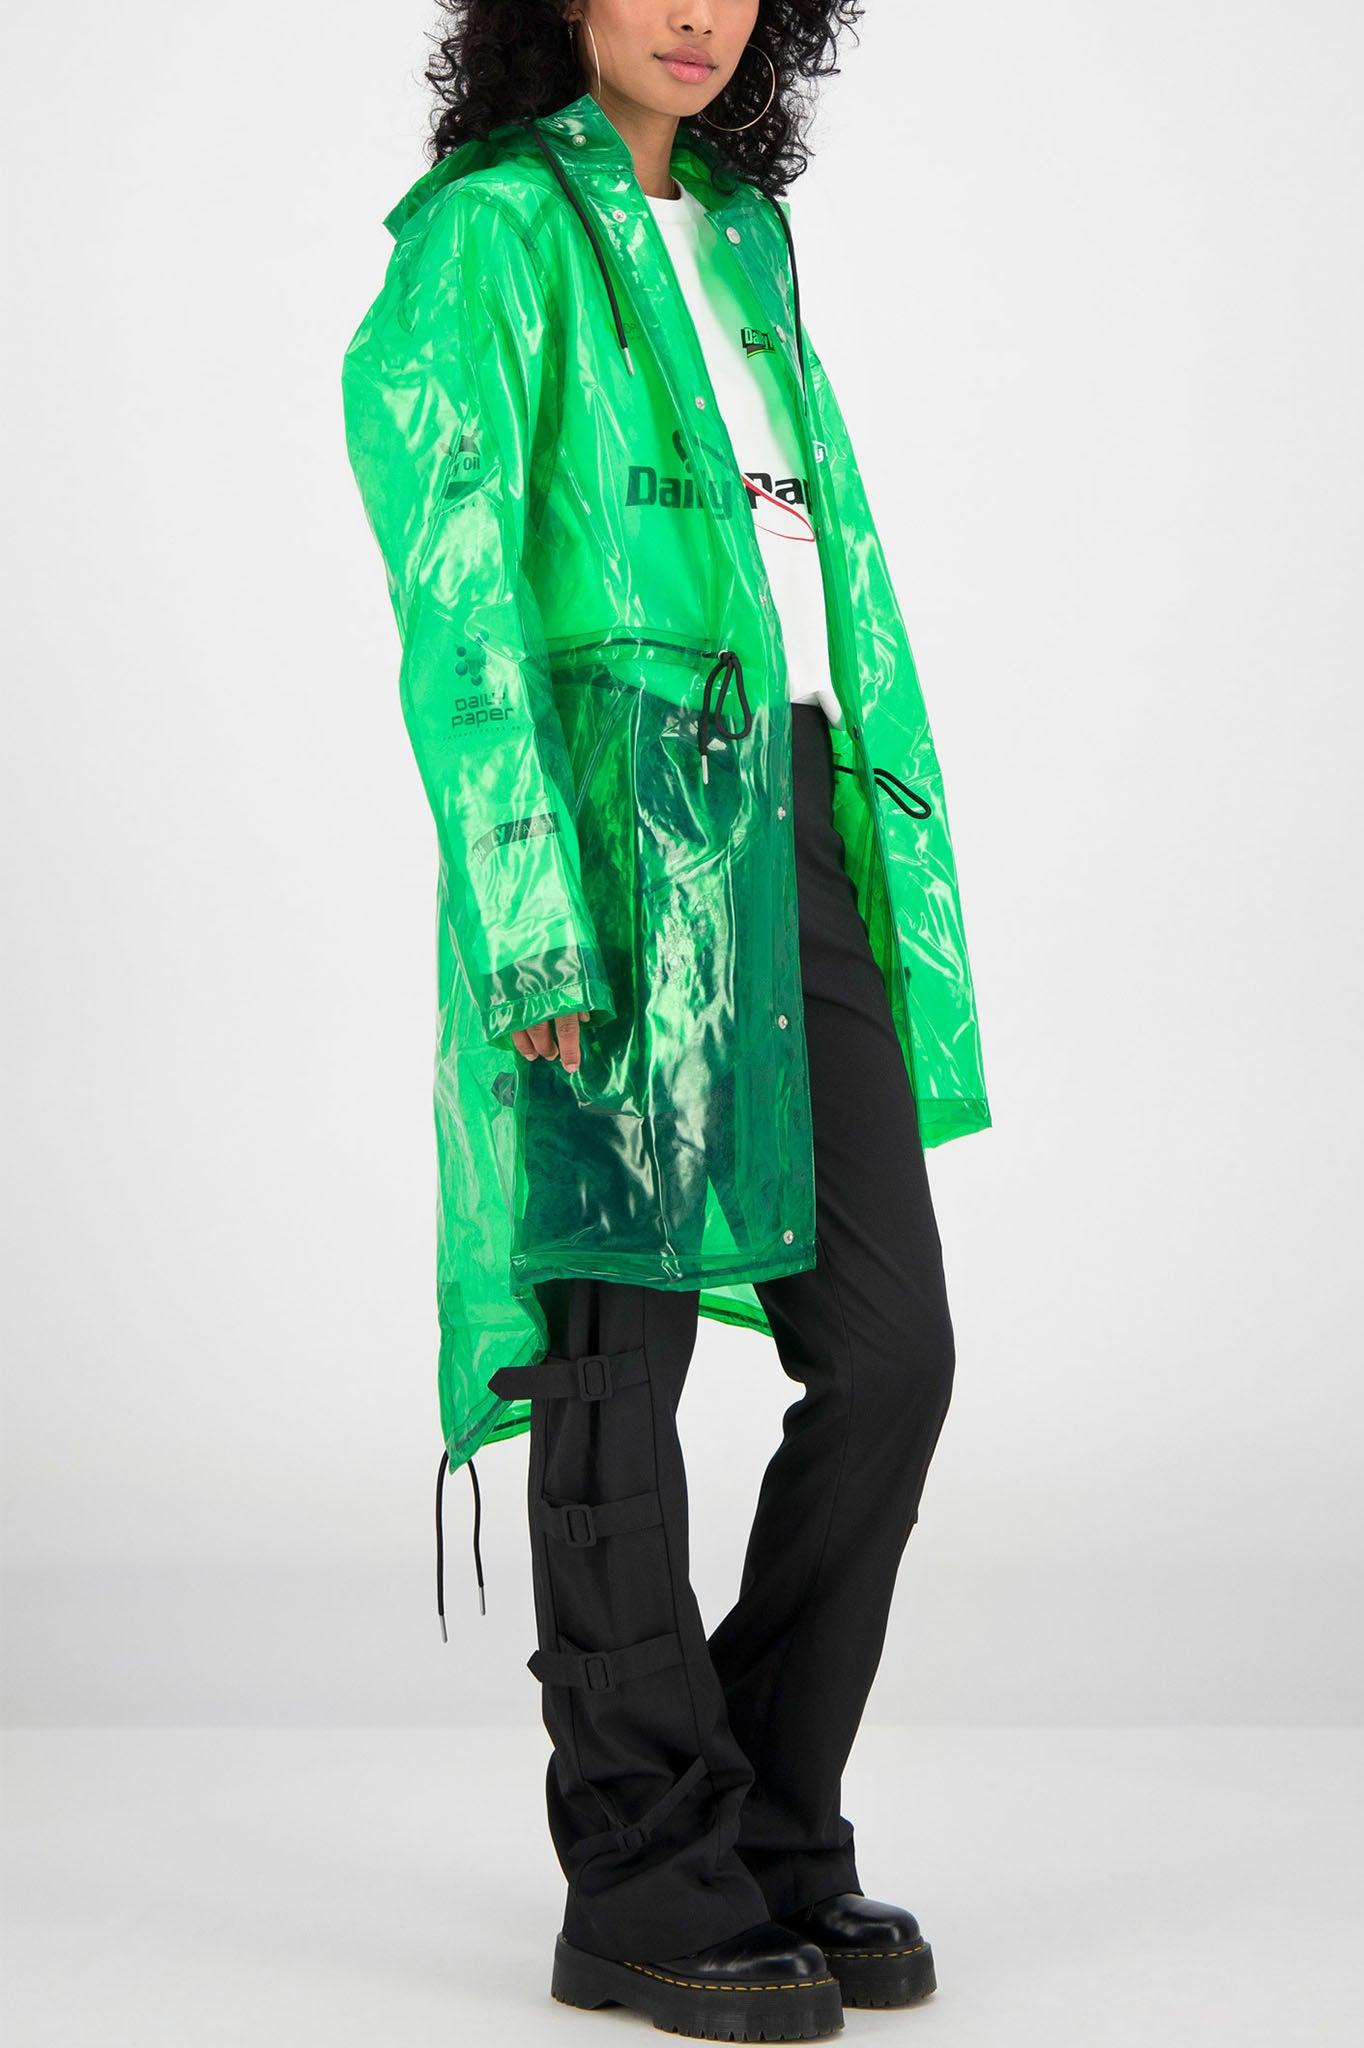 Daily Paper Green Transparent Raincoat